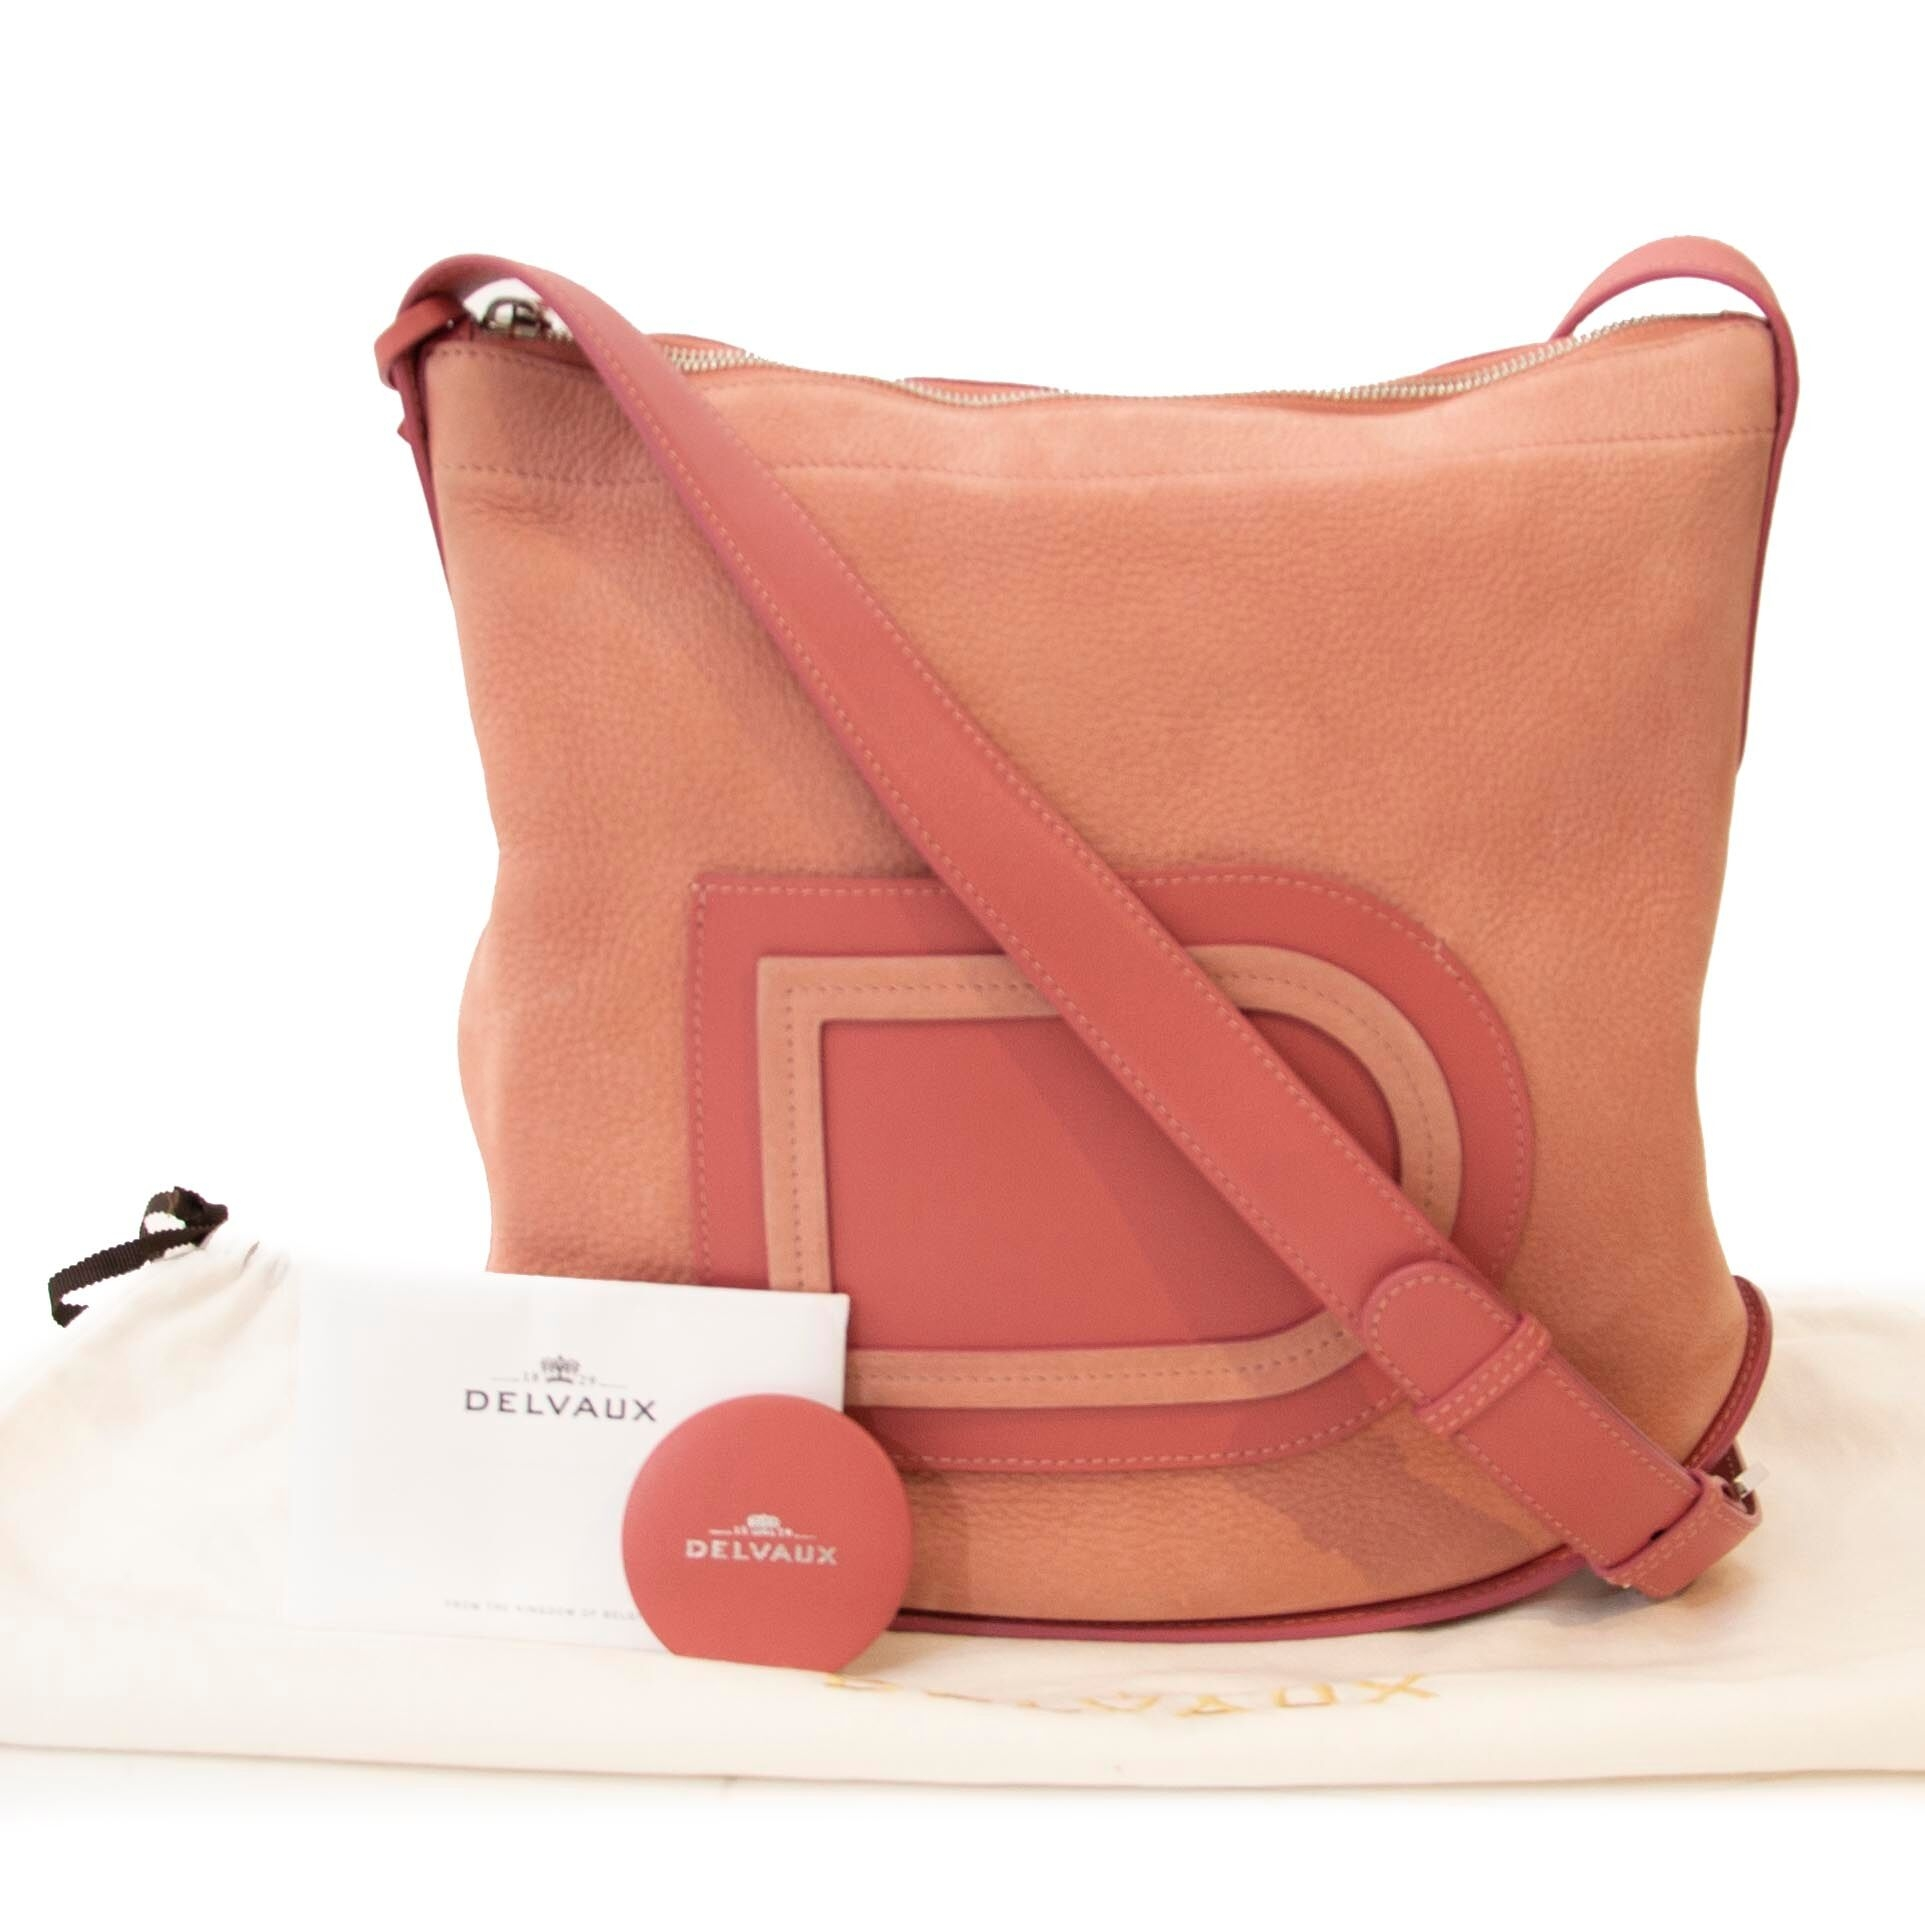 Pink Delvaux Pin bag